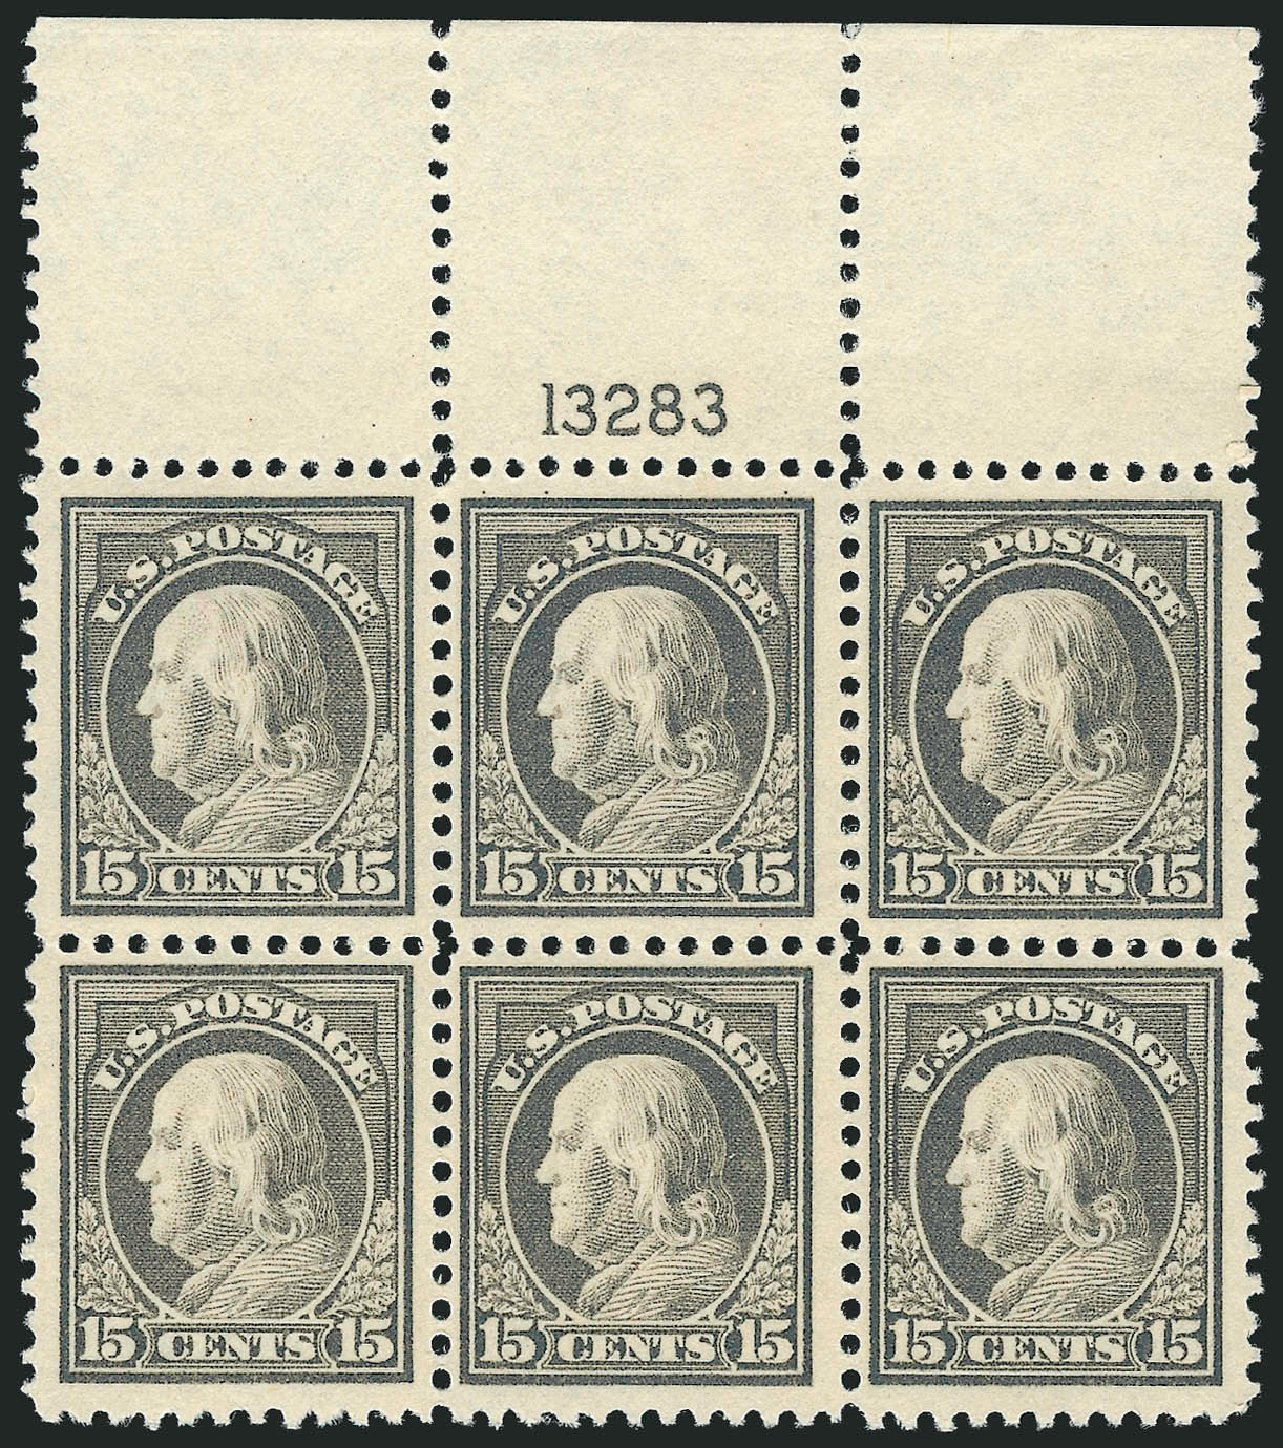 US Stamps Price Scott Catalog #514 - 1917 15c Franklin Perf 11. Robert Siegel Auction Galleries, Jul 2014, Sale 1077, Lot 302